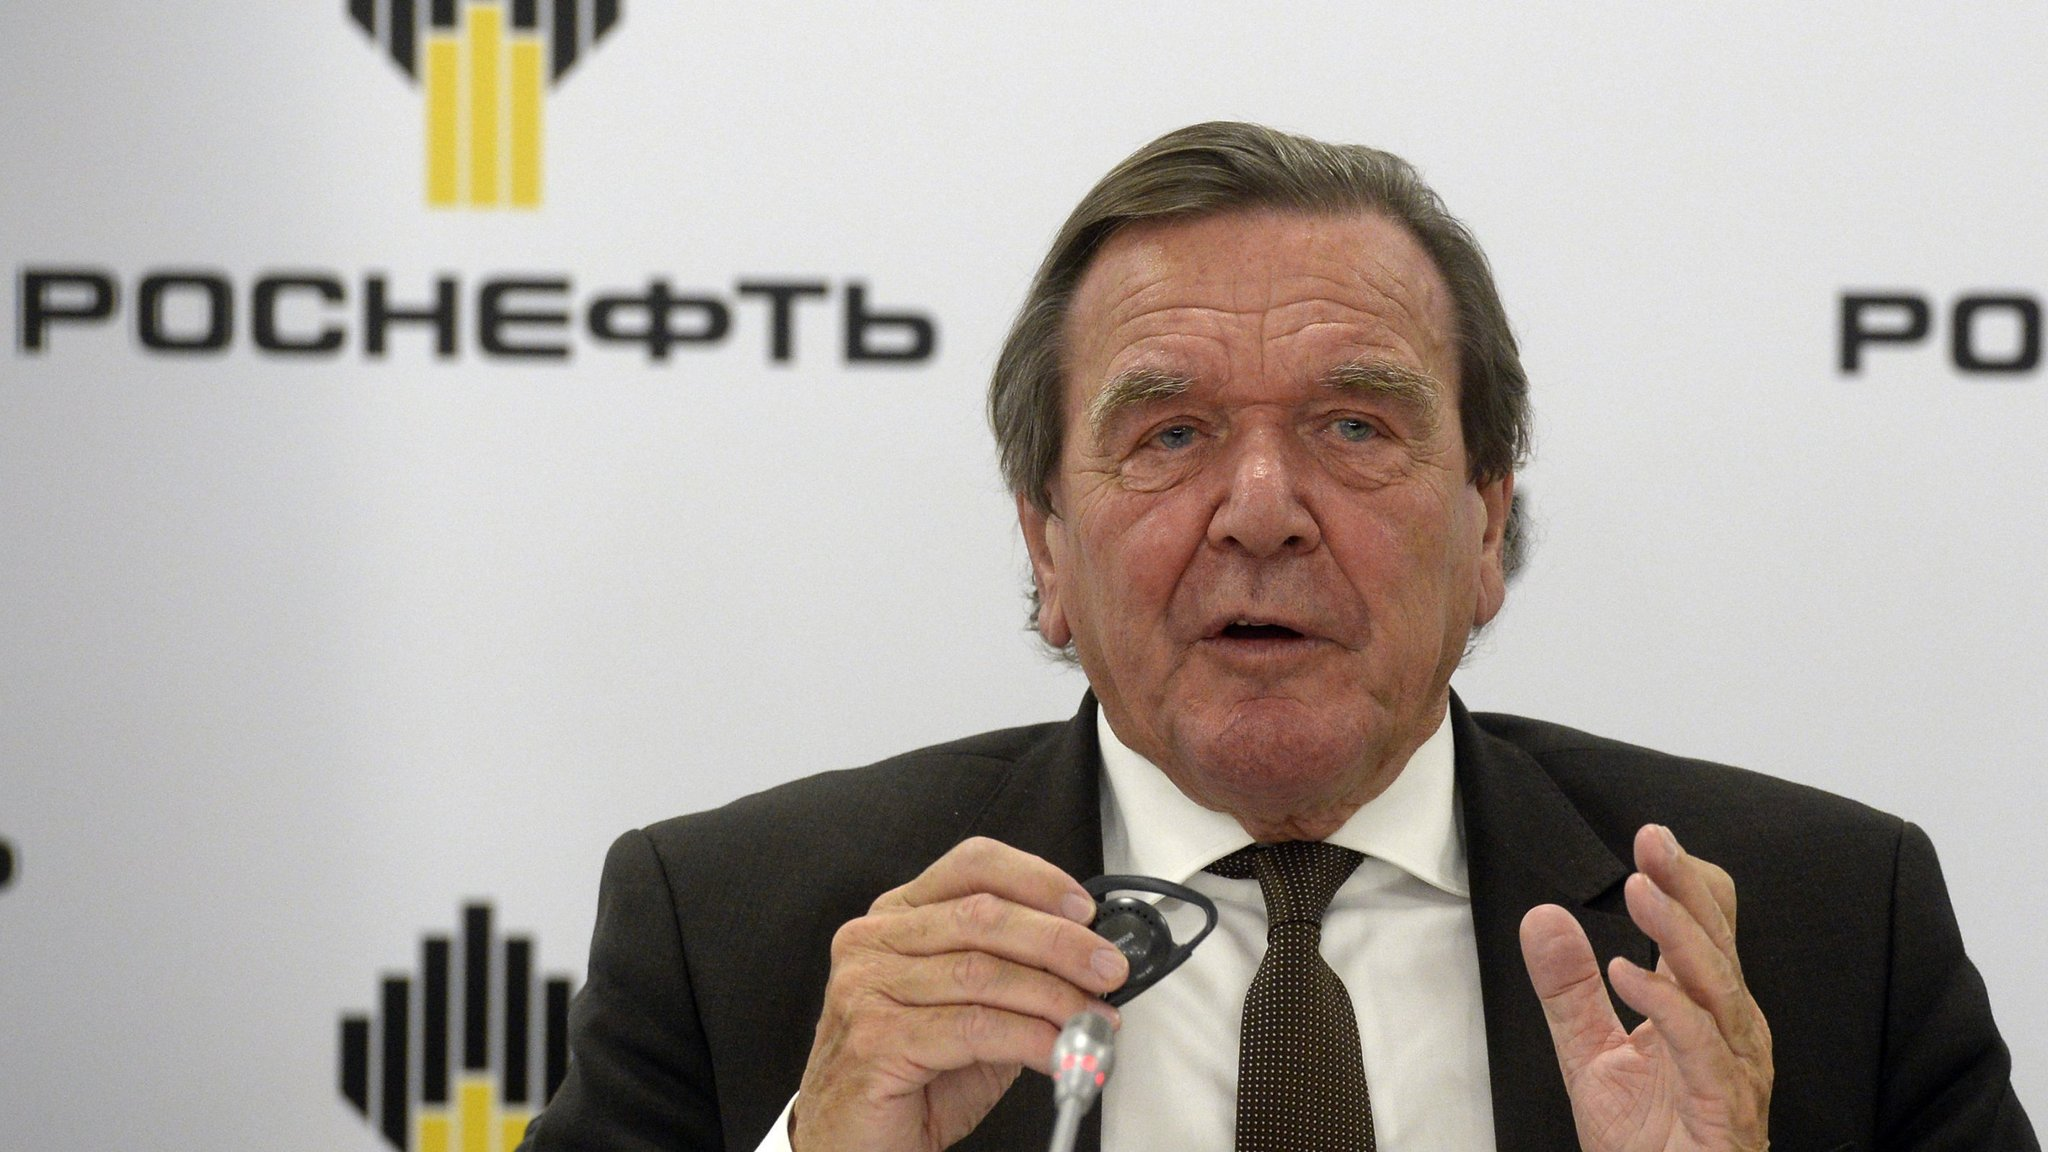 Heads of Rosneft and Gazprom ordered to publish data on their income 12/22/2014 35